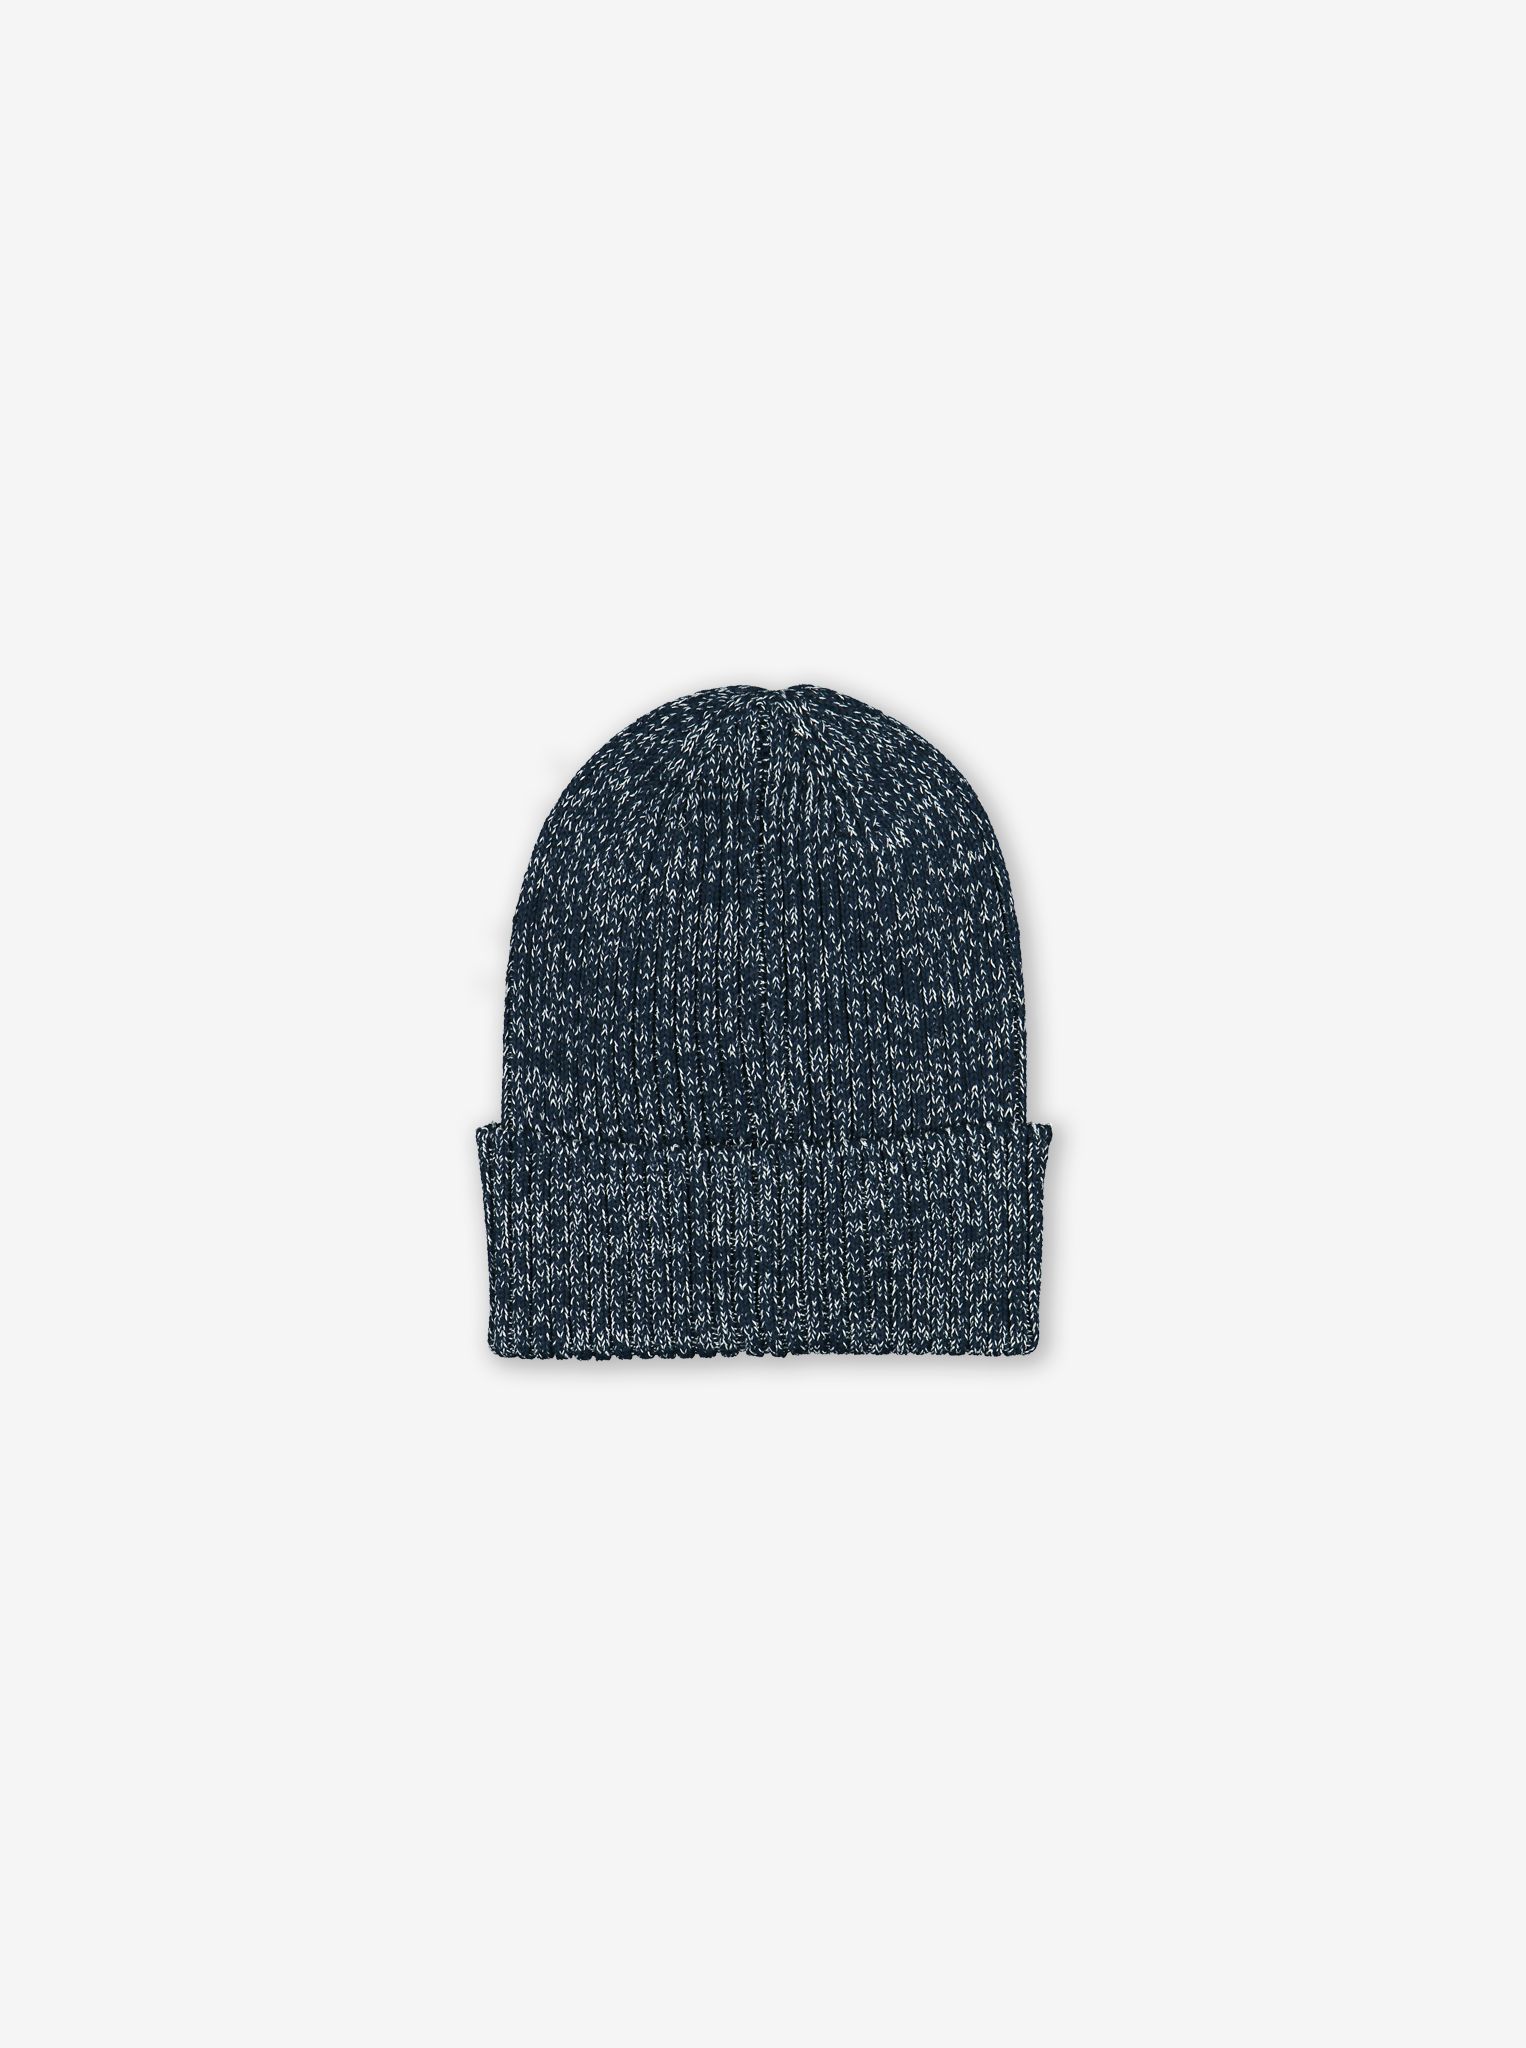 Kids Reflective Beanie Hat-Unisex-Blue-2-12y